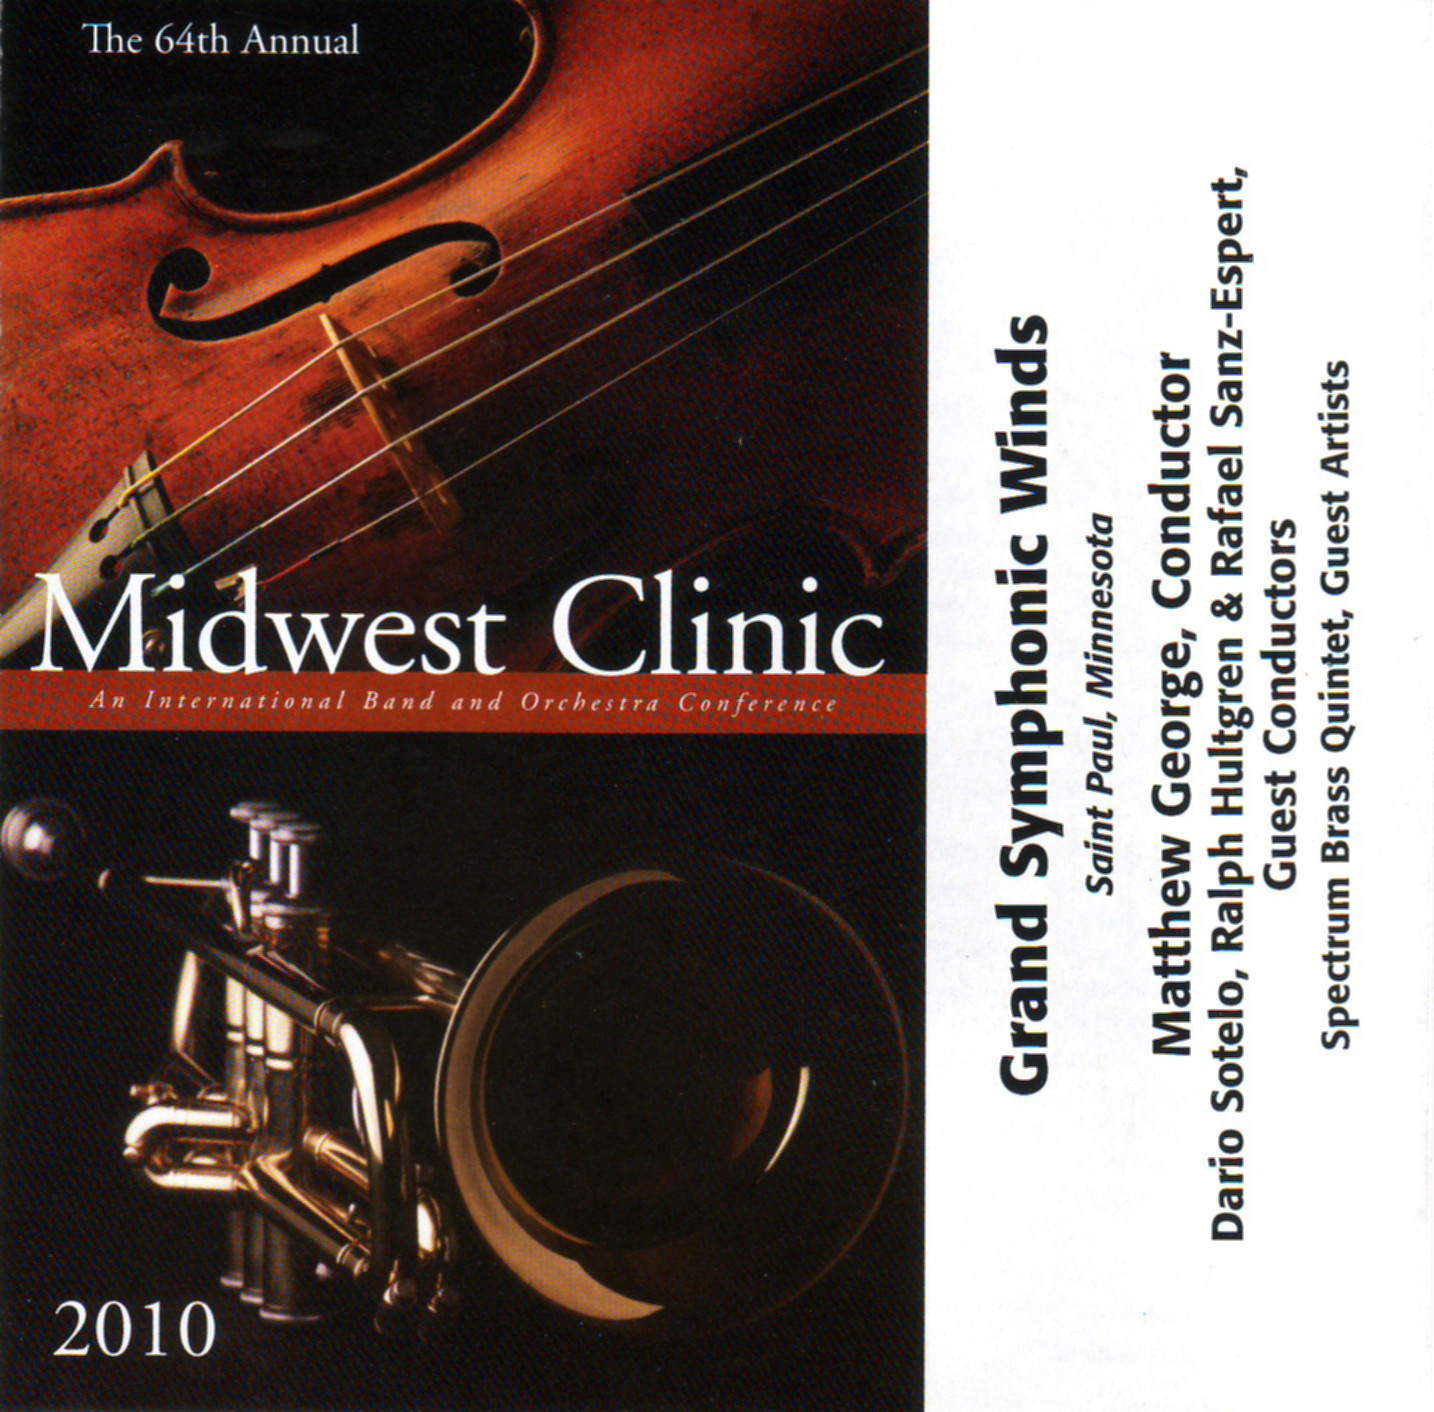 Midwest Clinic 2010